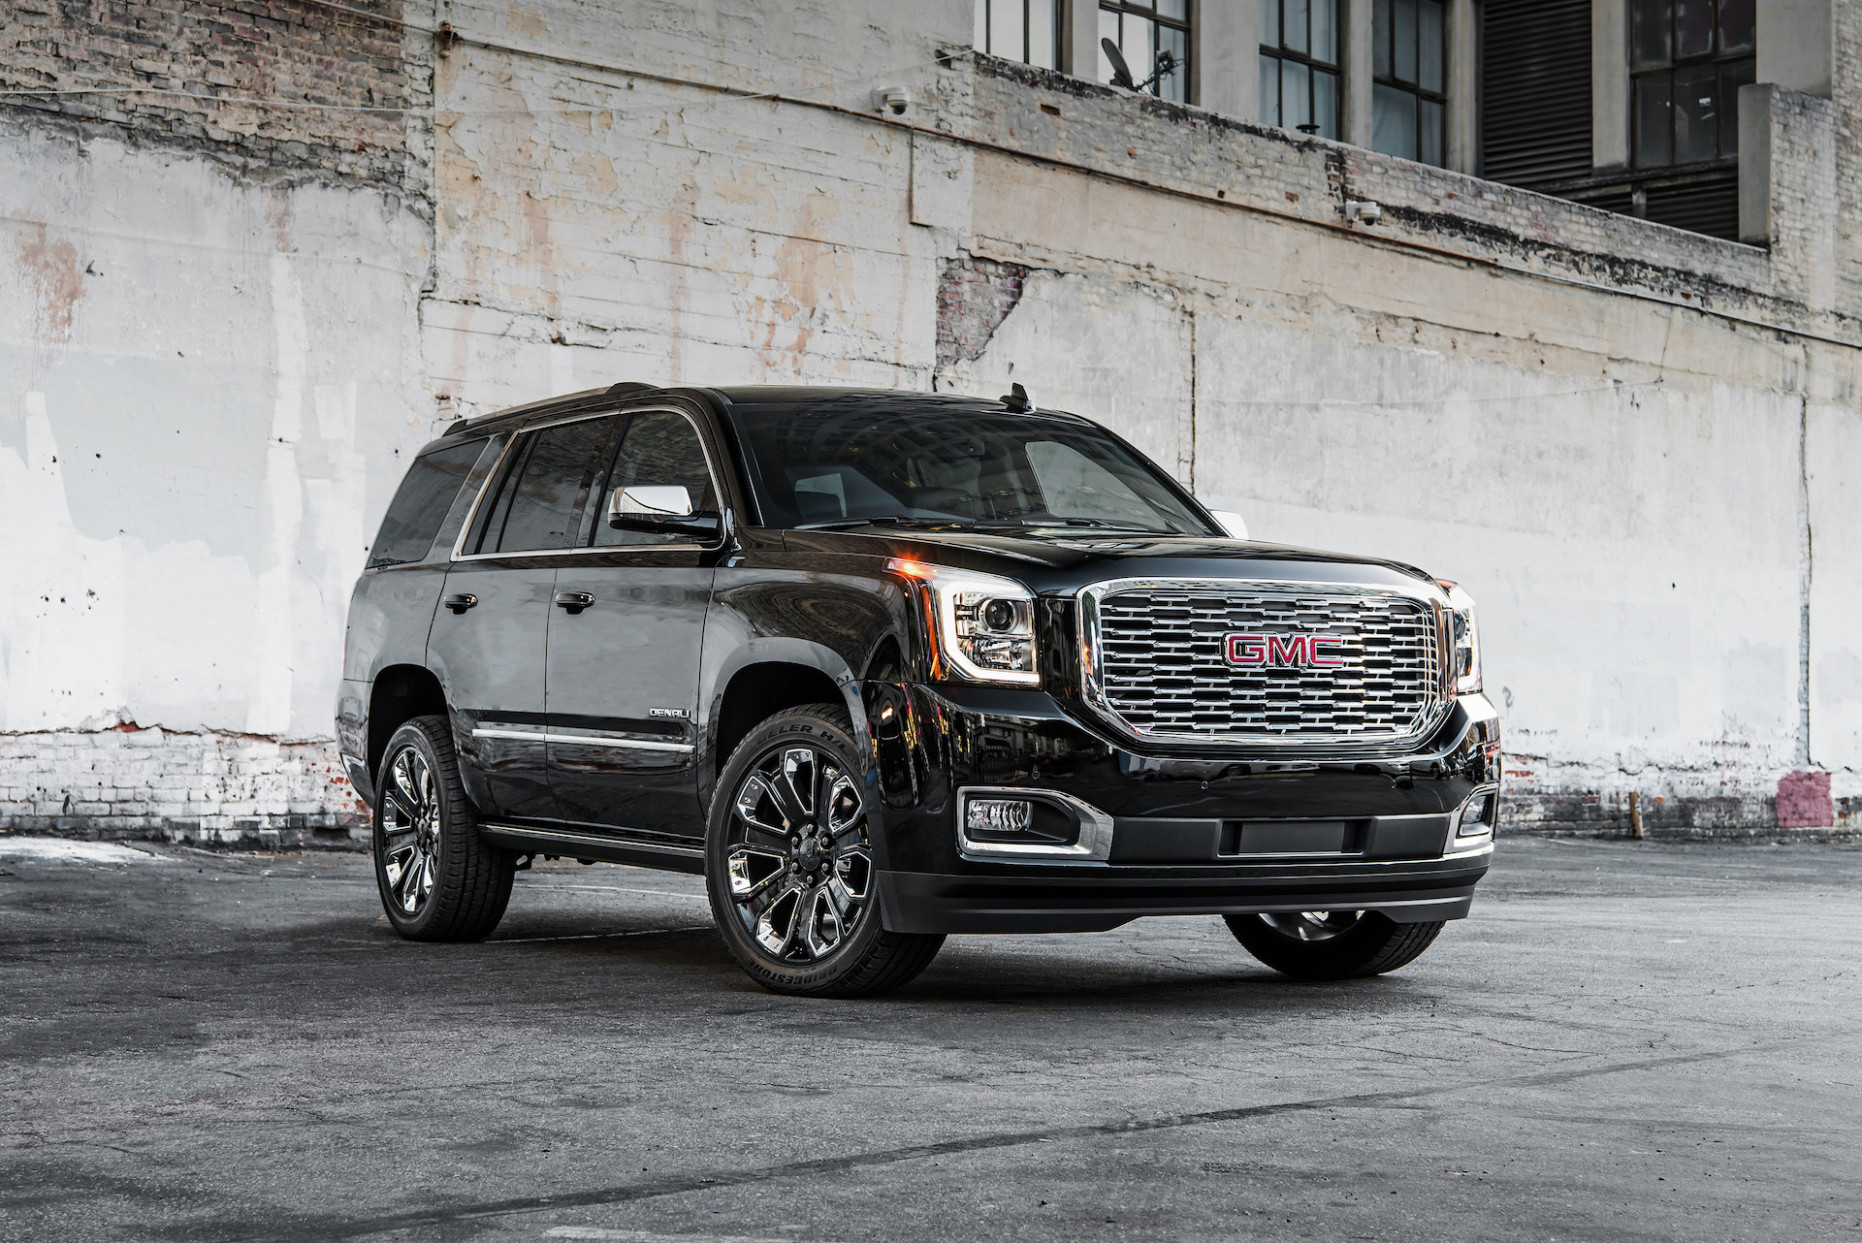 9 GMC Yukon Review, Ratings, Specs, Prices, and Photos - The ..